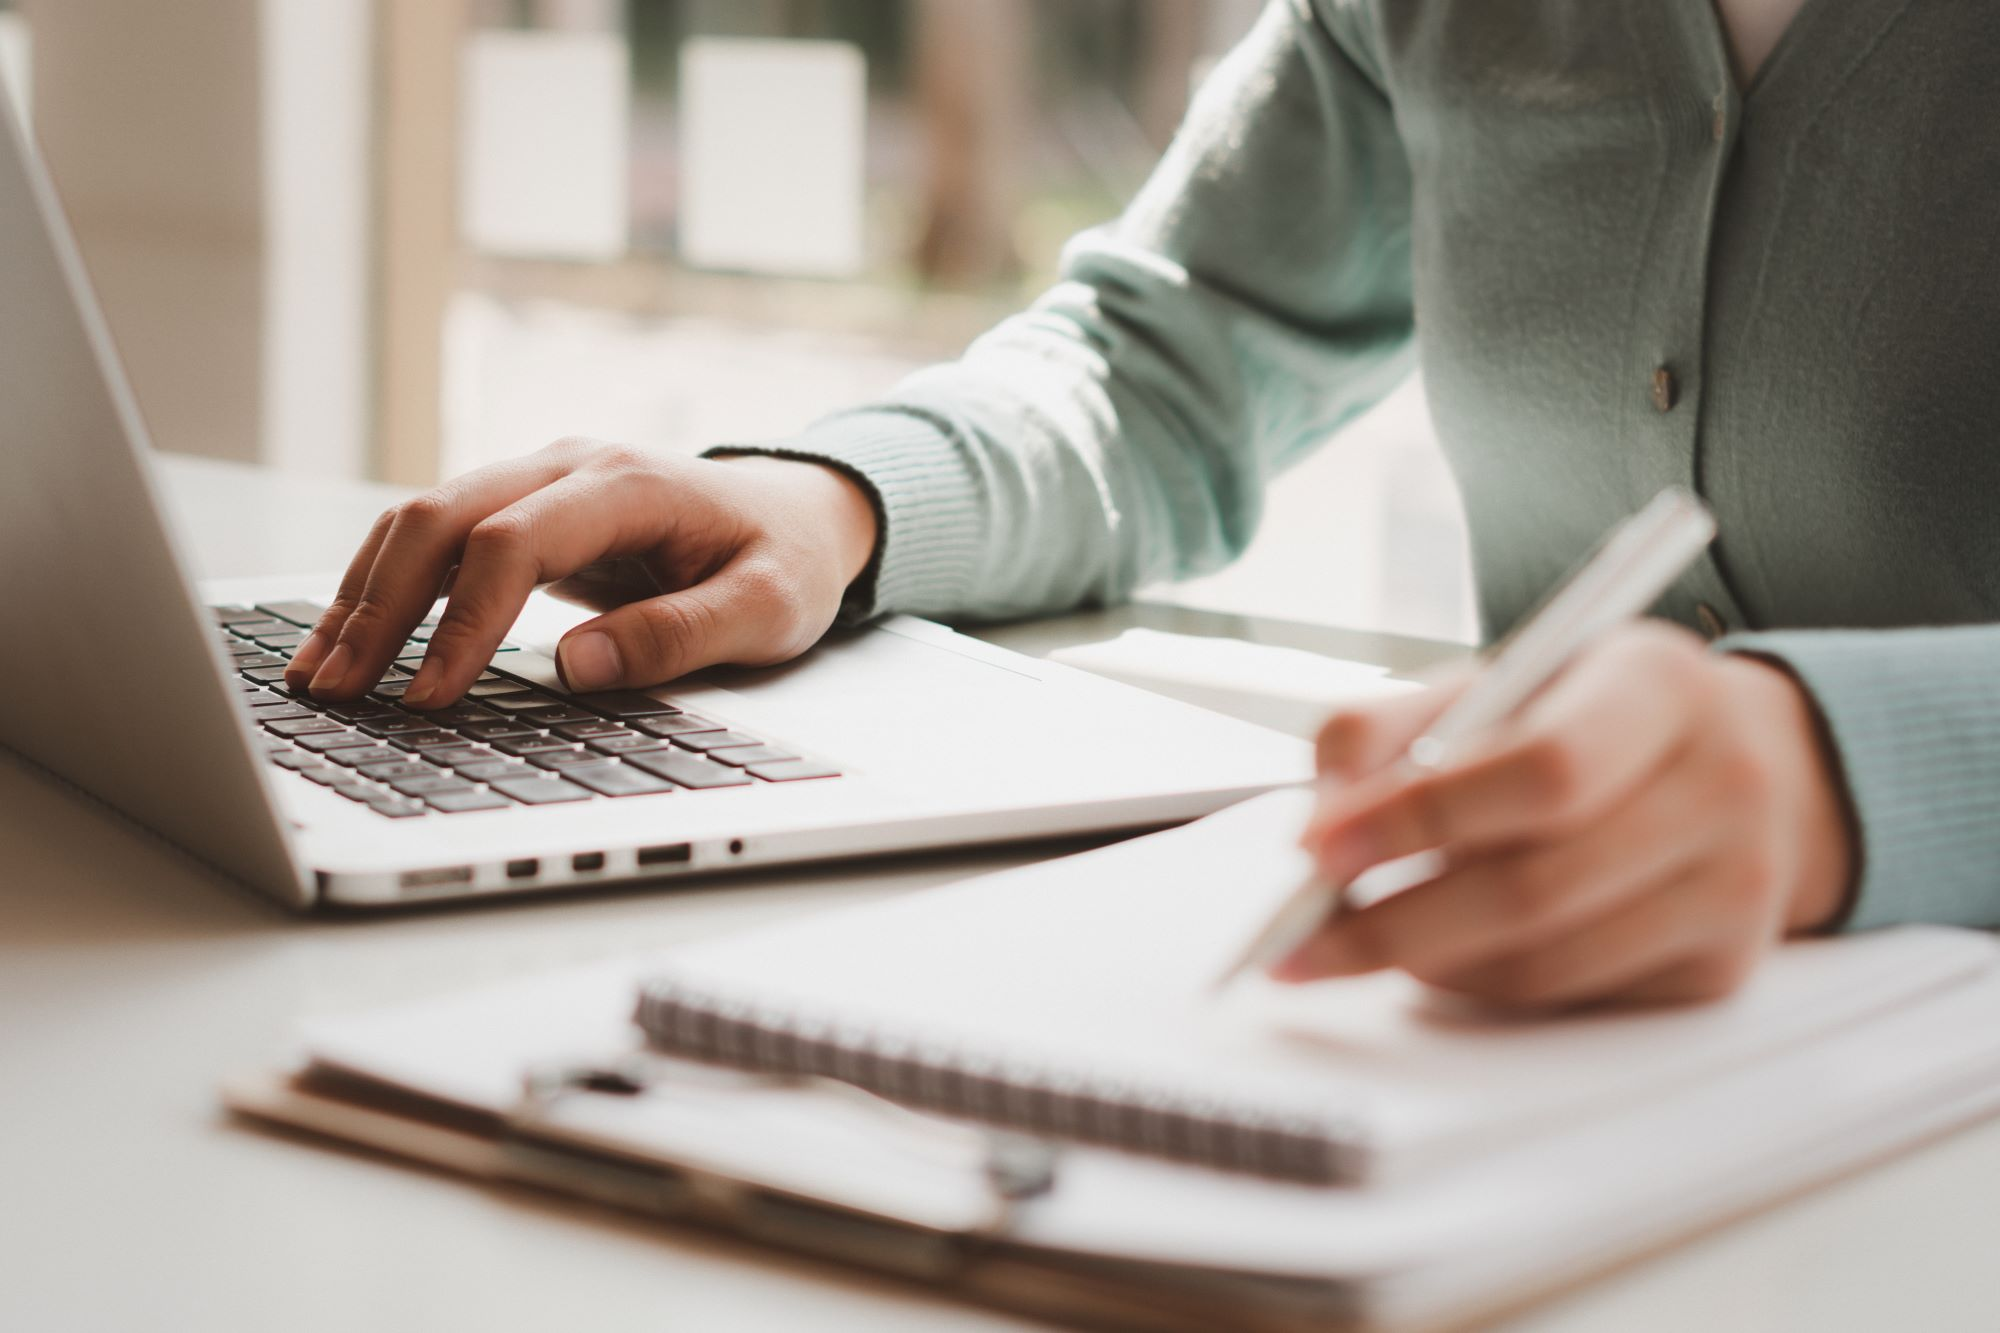 A white woman works on a computer going through her business transfer checklist